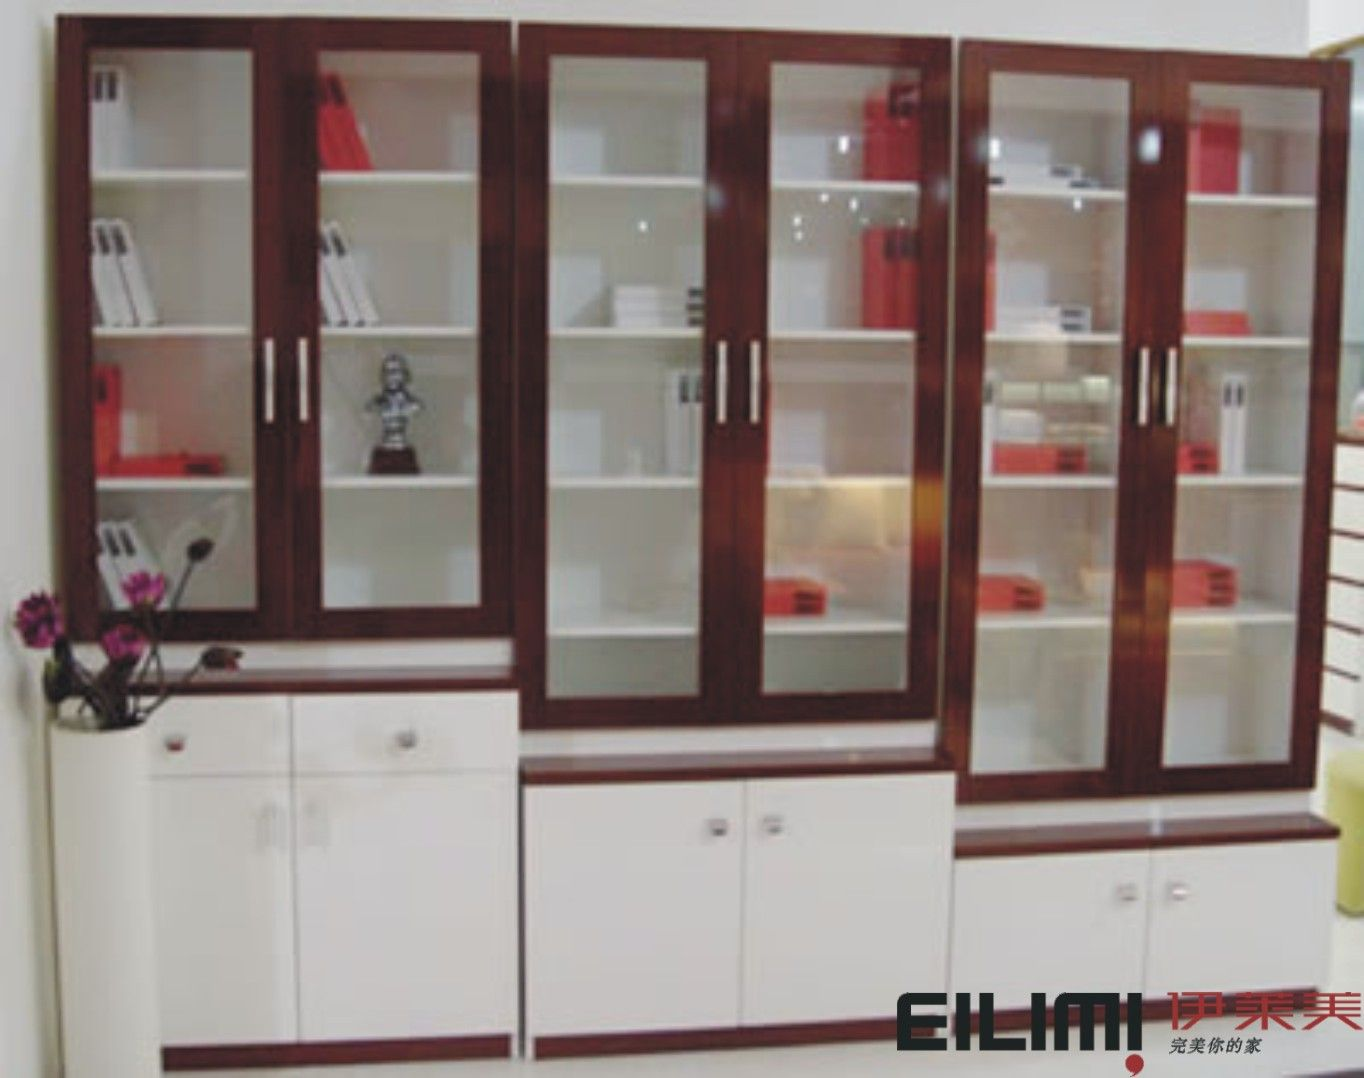 Cabinet Design For Living Room dining storage cabinet. zamp.co